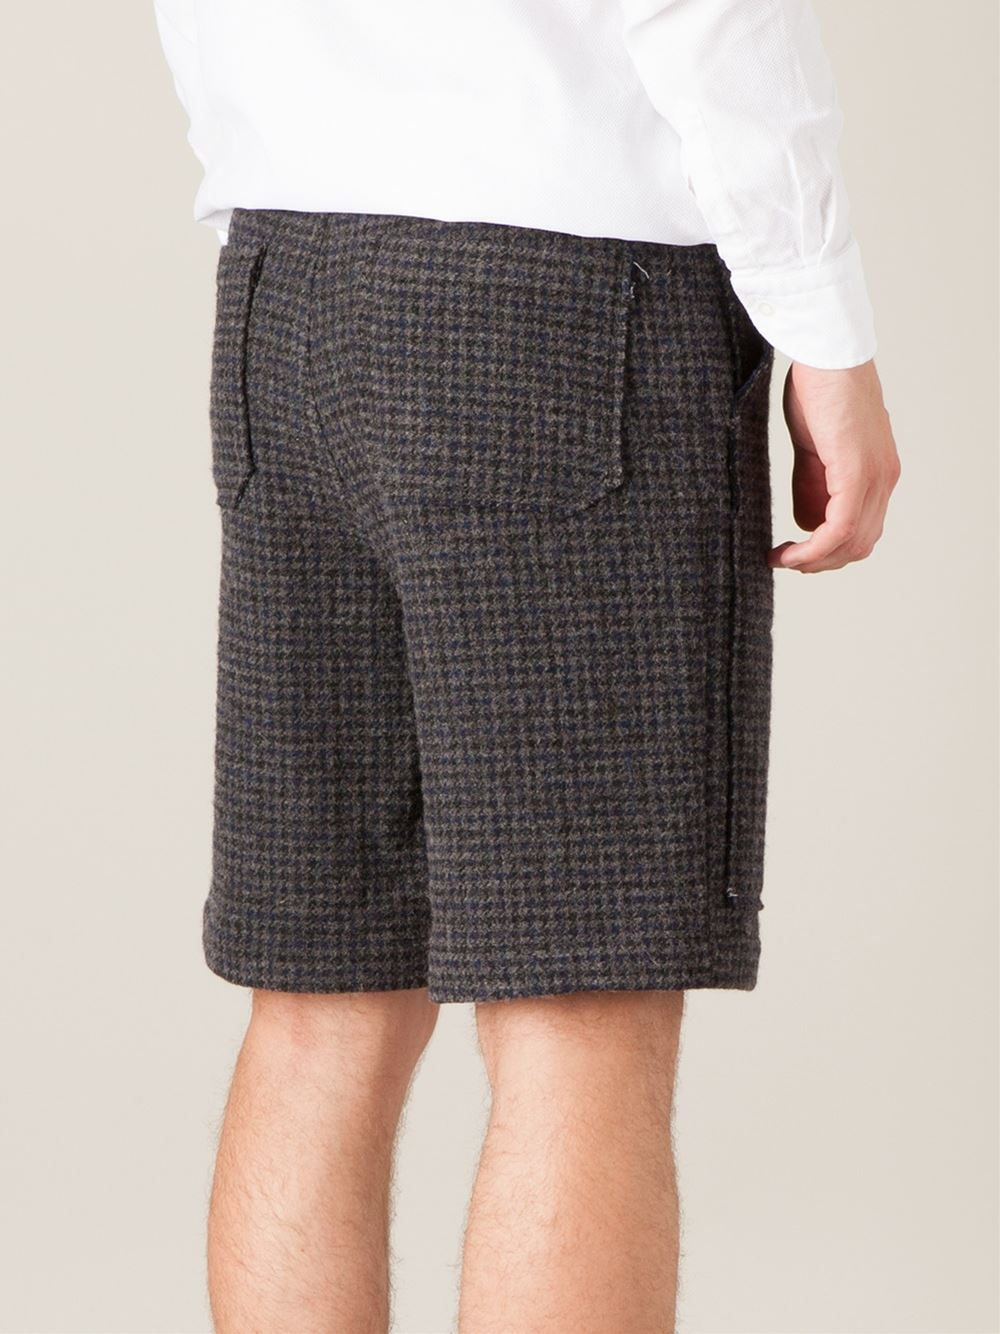 Tweed Pants. When cool weather comes calling, nothing says style like chic tweed pants. From sleek draped dress pants to funky winter leggings, discover this super stylish look in .